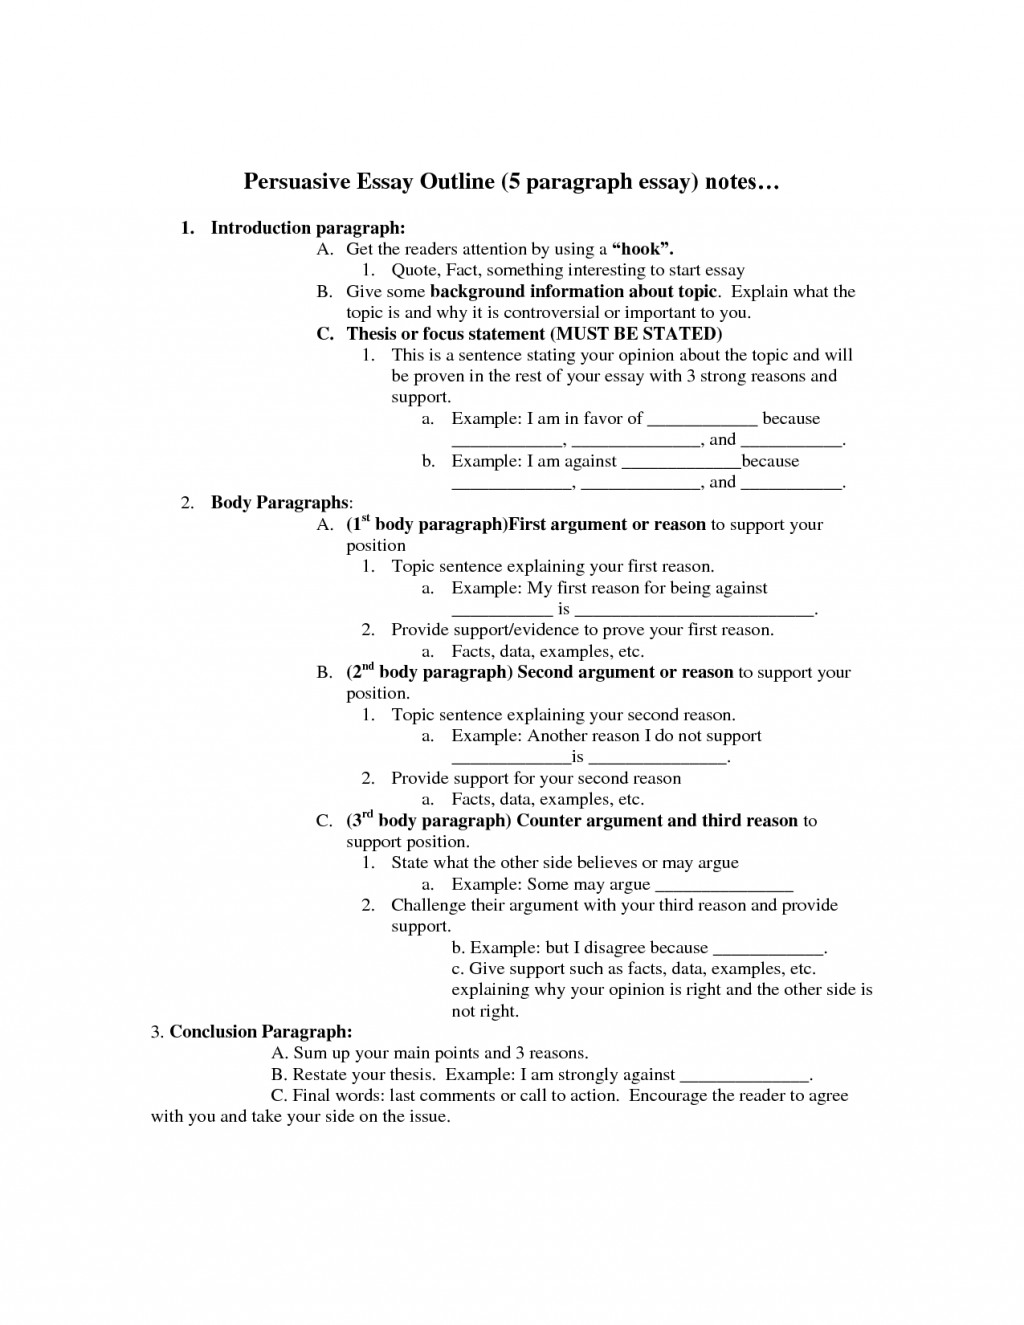 006 Persuasive Essay Outline Unbelievable Good Topics 5th Grade Format Middle School Example Large